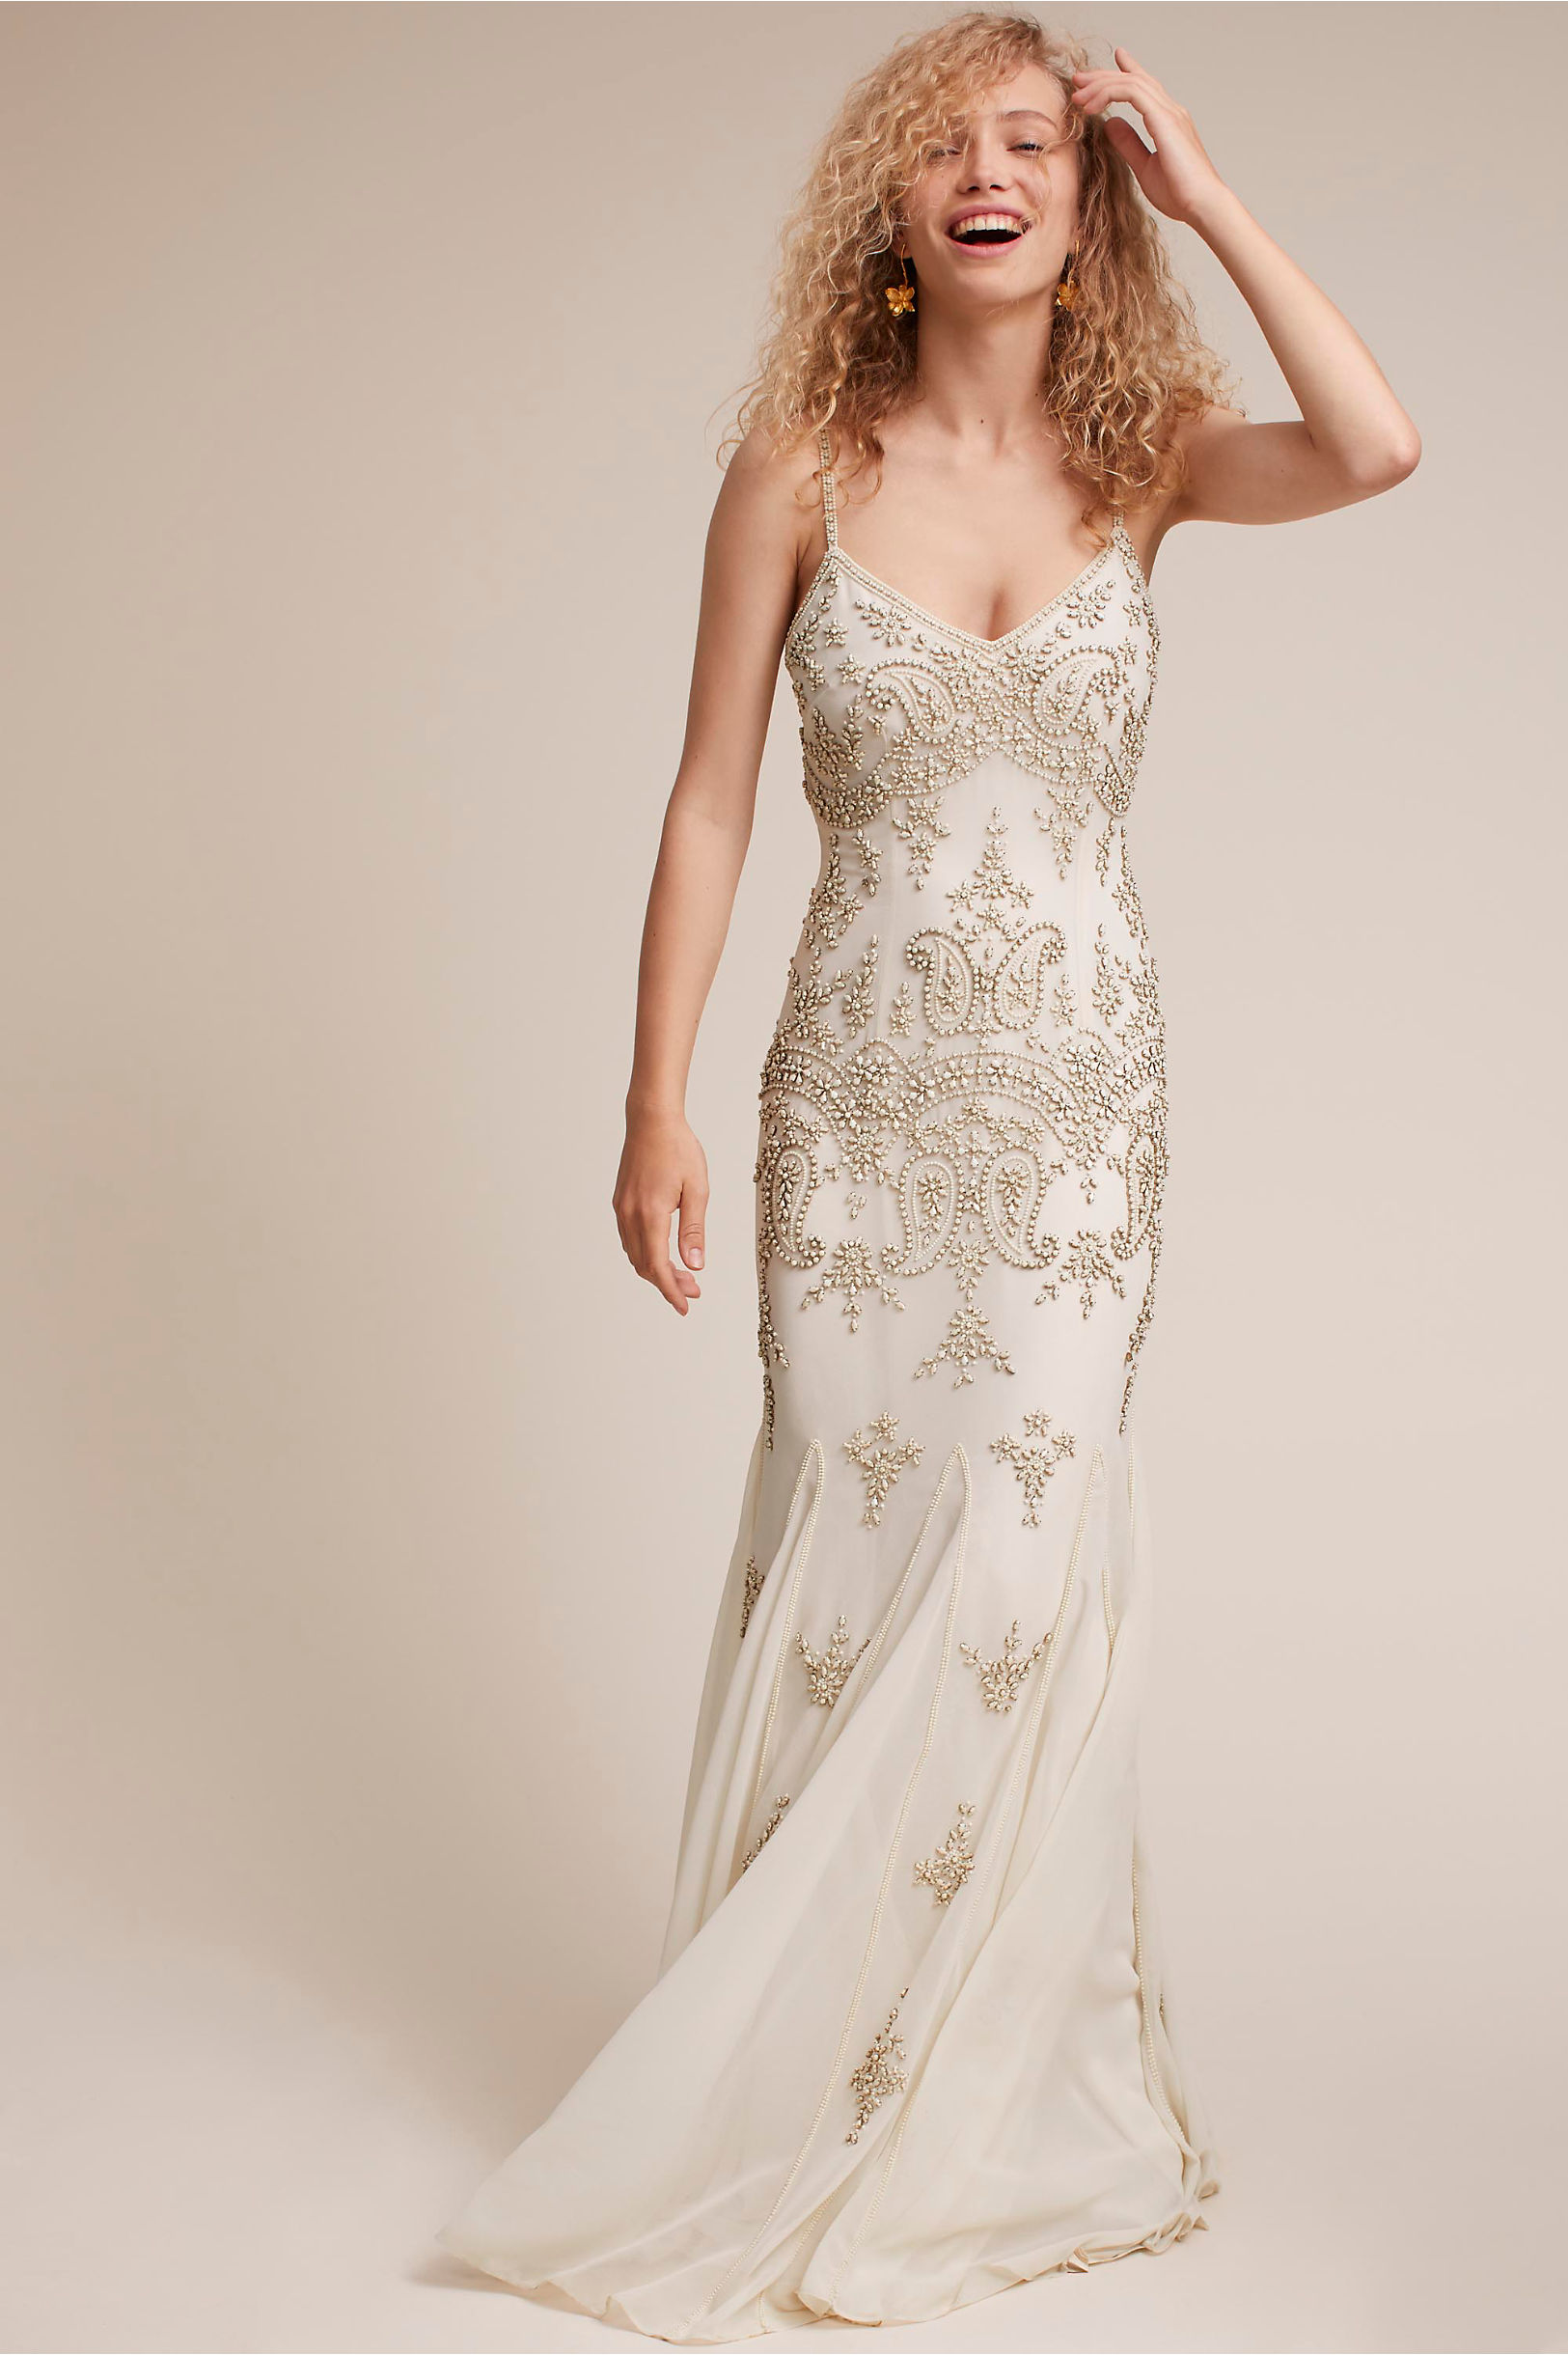 1920s Wedding Dresses- Art Deco Wedding Dress, Gatsby Wedding Dress Deco Dreams Gown $800.00 AT vintagedancer.com